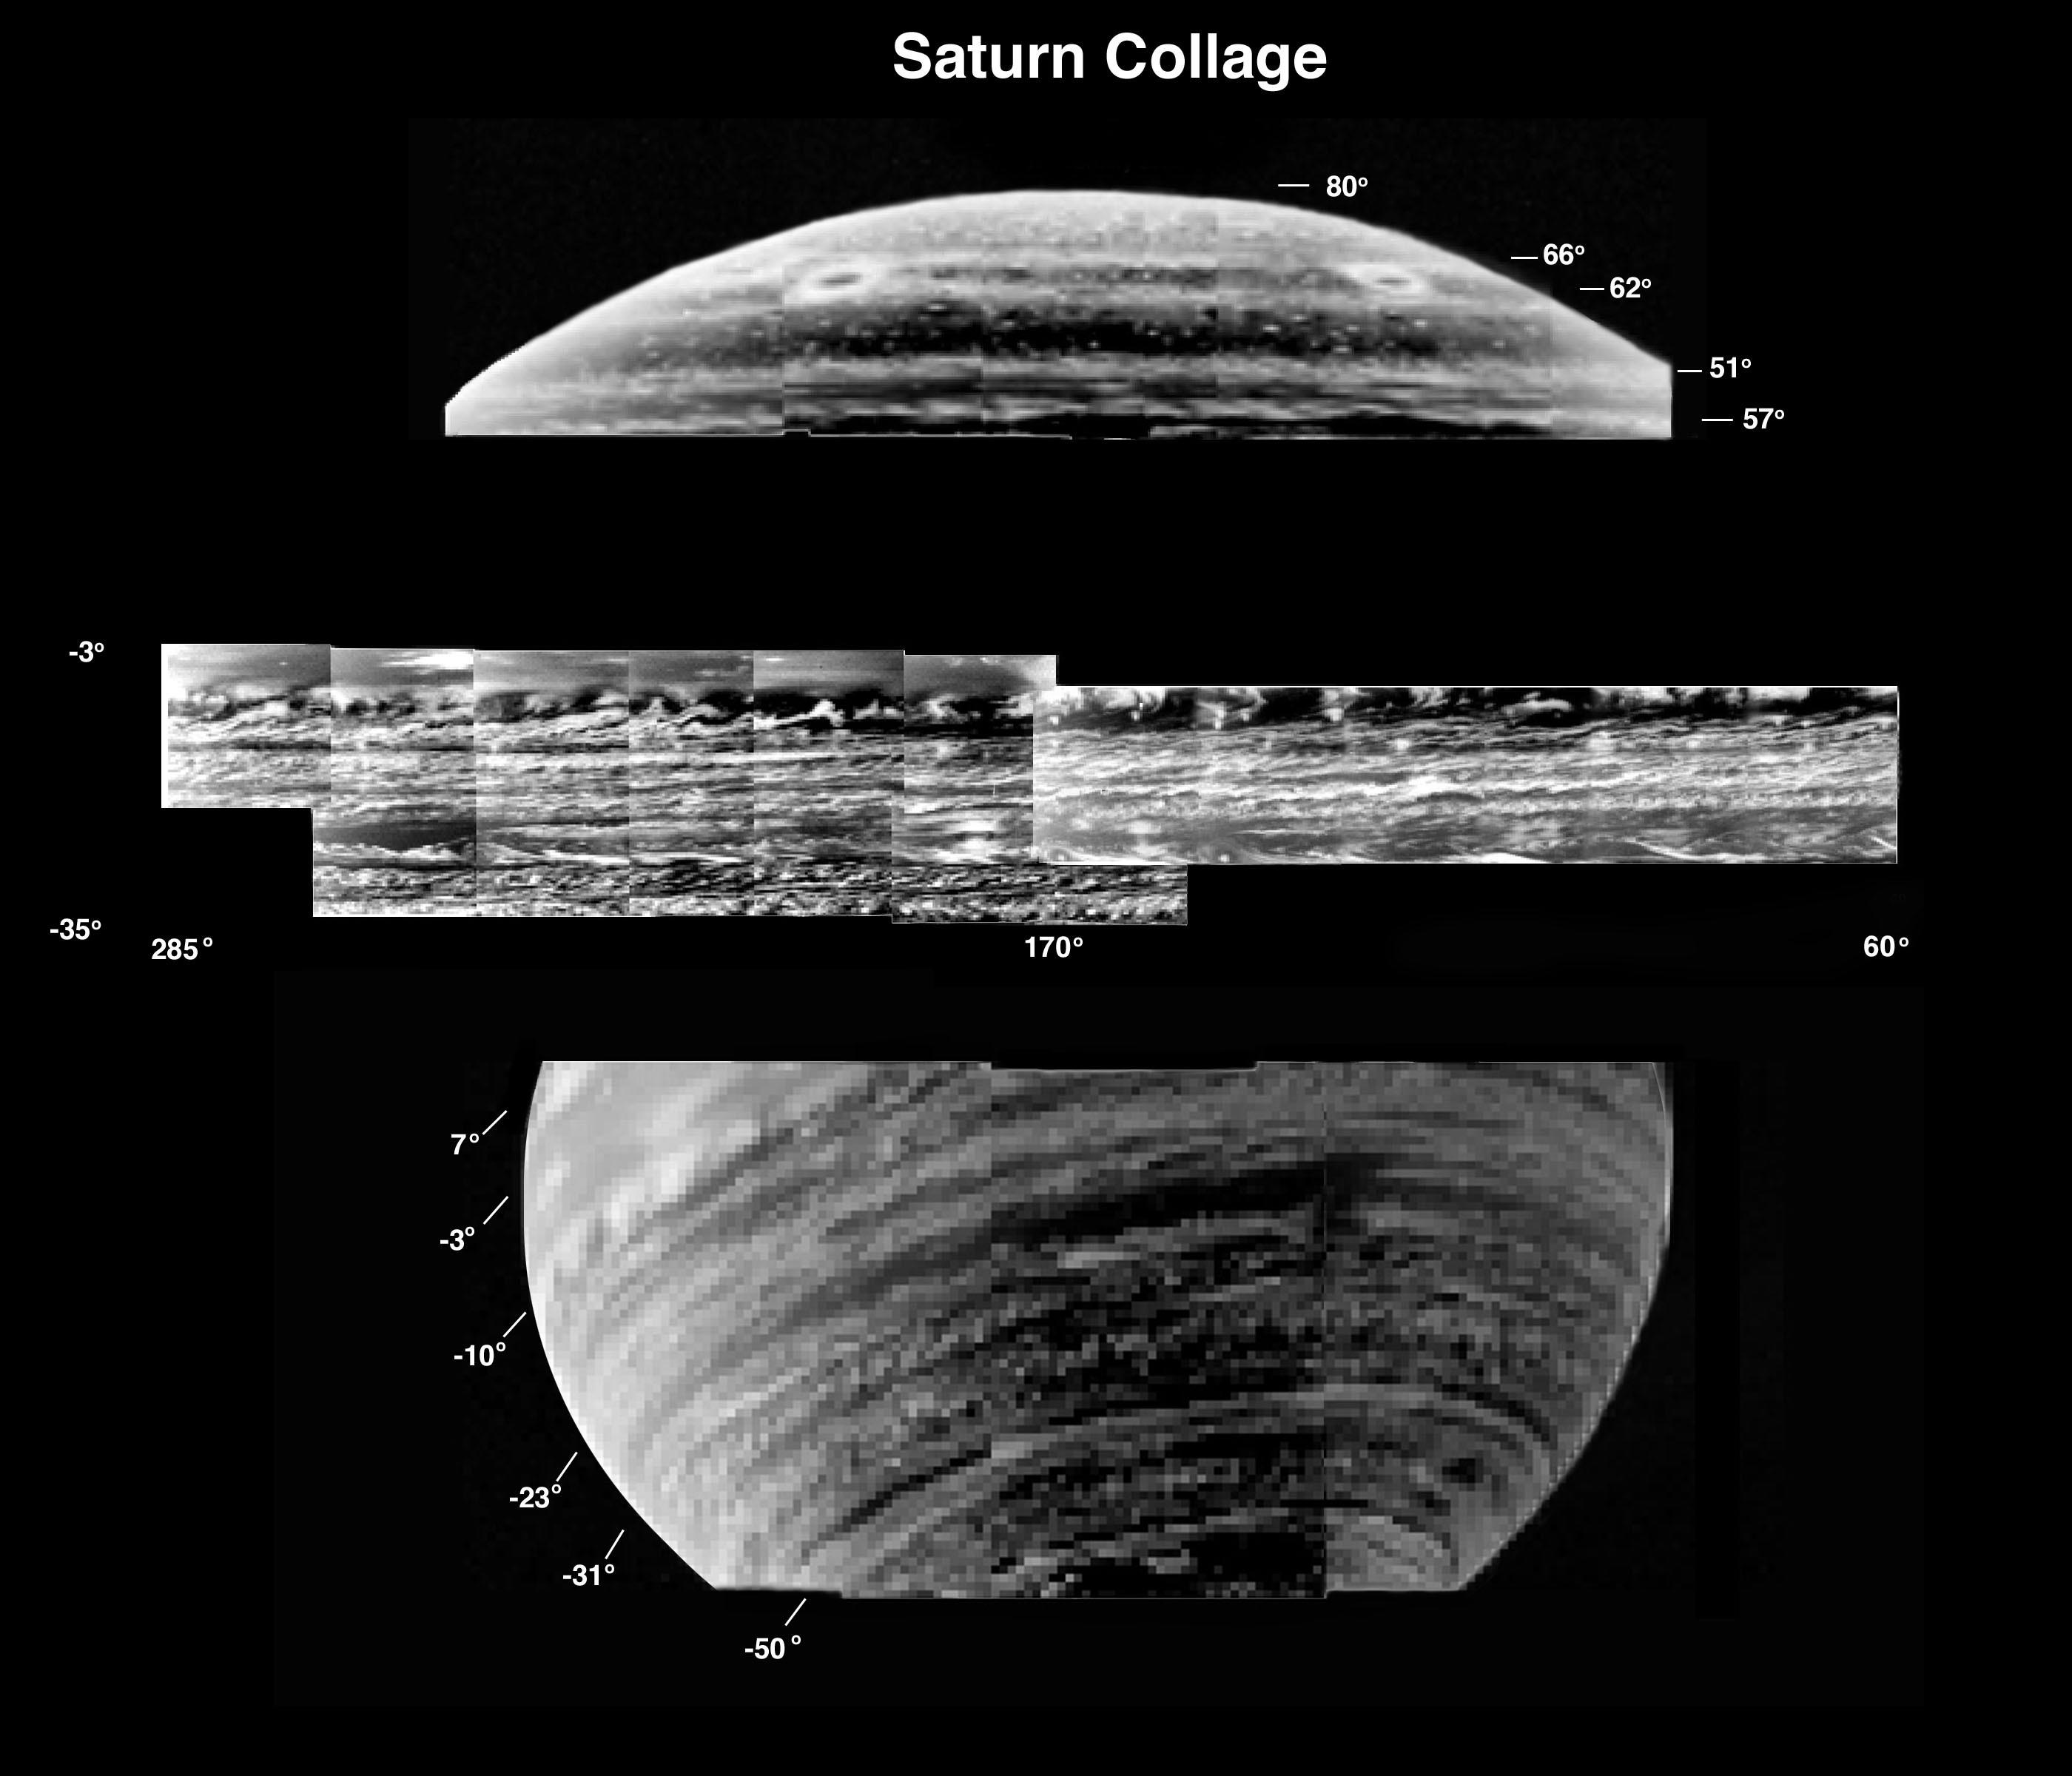 This is a collection of the most detailed images of deep-level clouds obtained by the visual and infrared mapping spectrometer onboard the Cassini spacecraft.